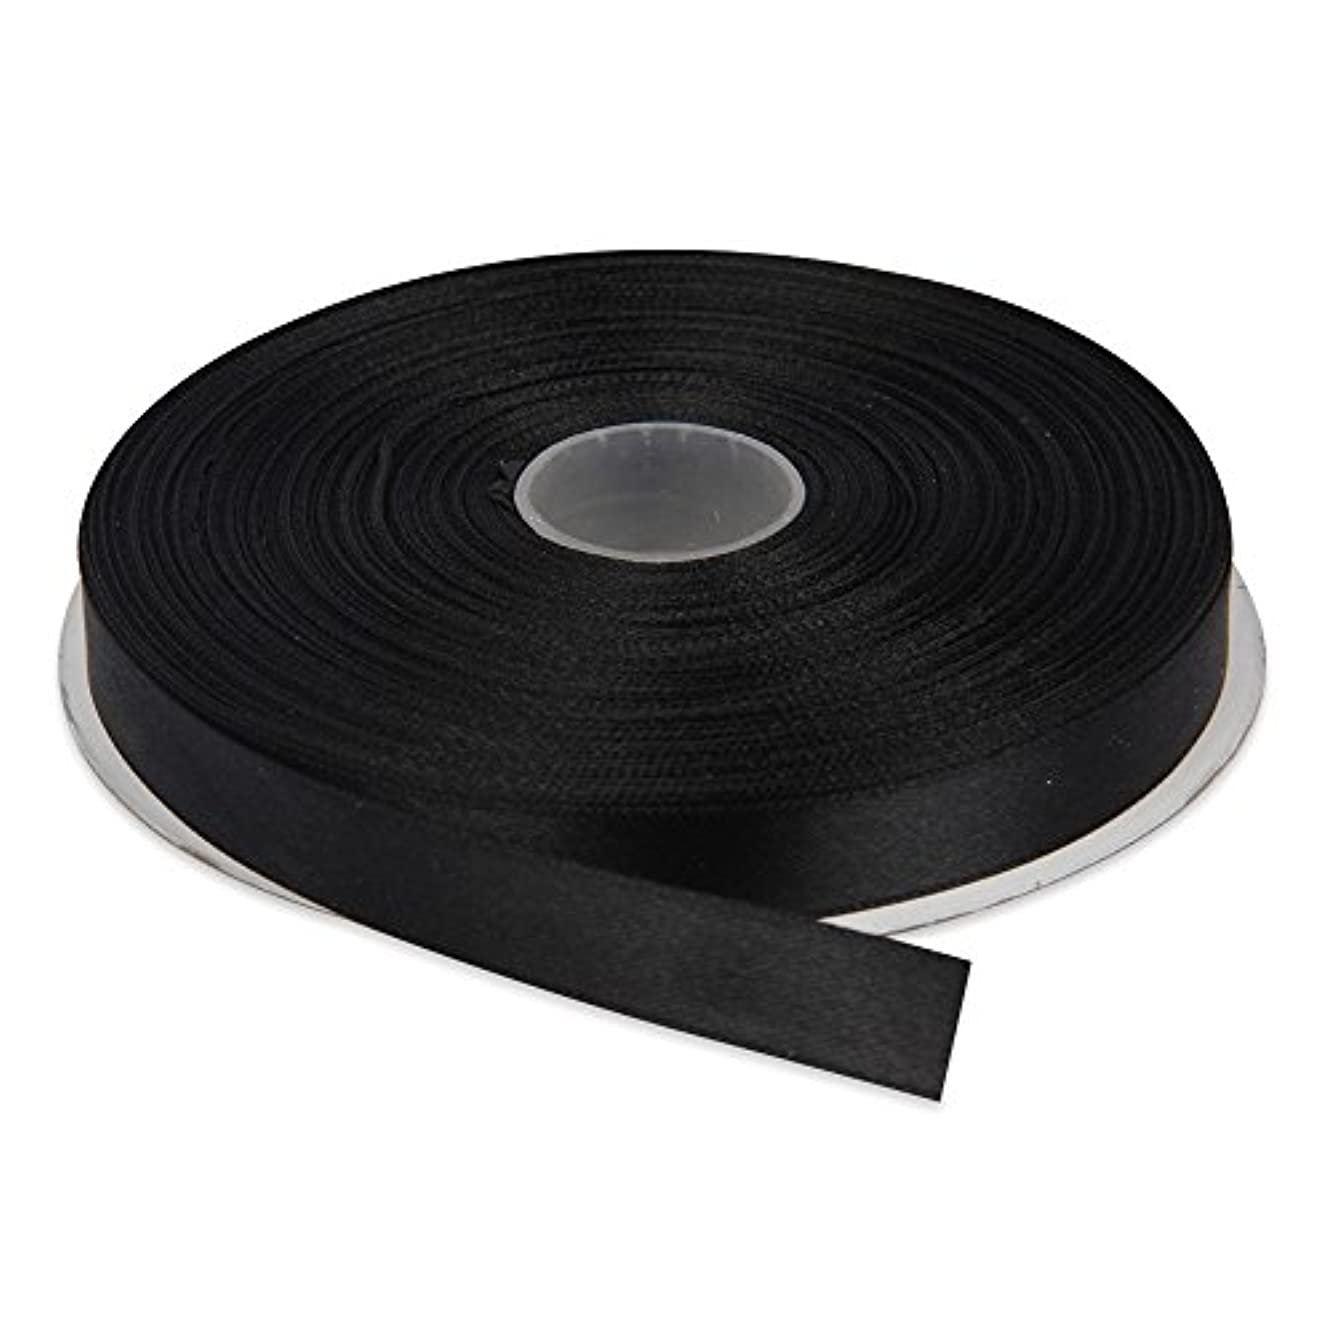 Topenca Supplies 1/2 Inches x 50 Yards Double Face Solid Satin Ribbon Roll, Black yocscuskq597513